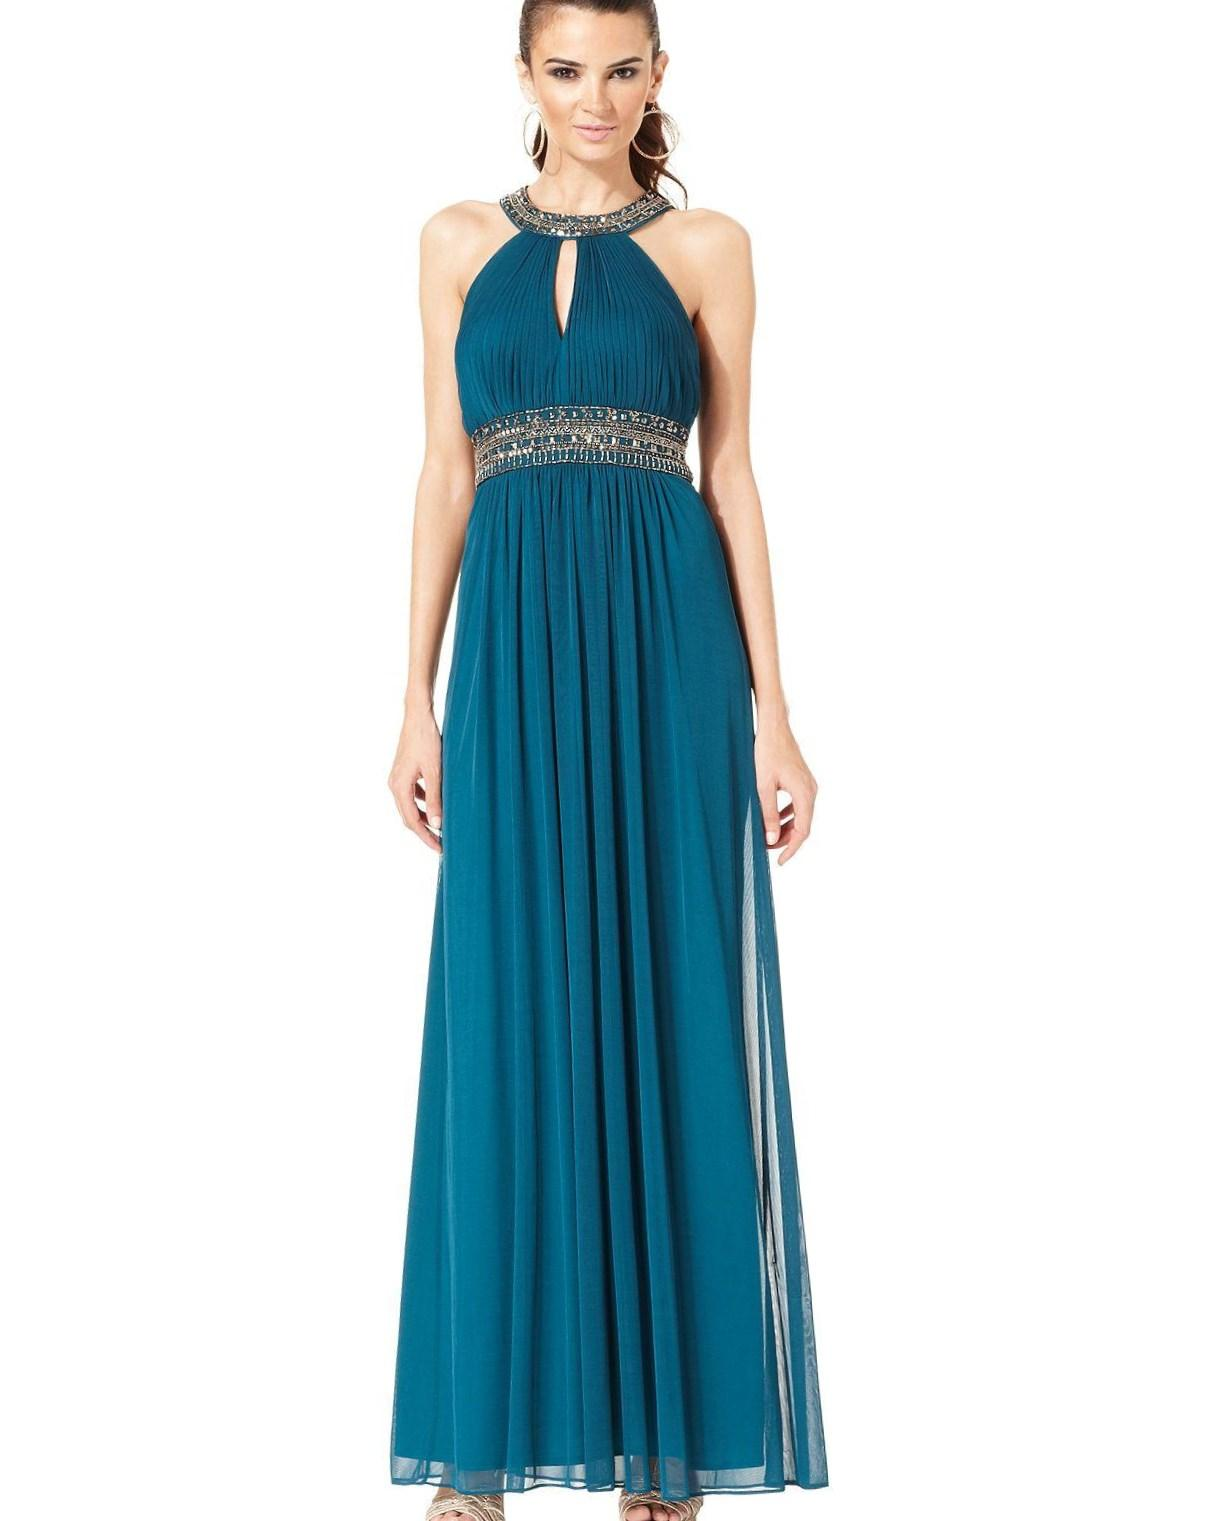 macys evening dresses with sleeves photo - 1